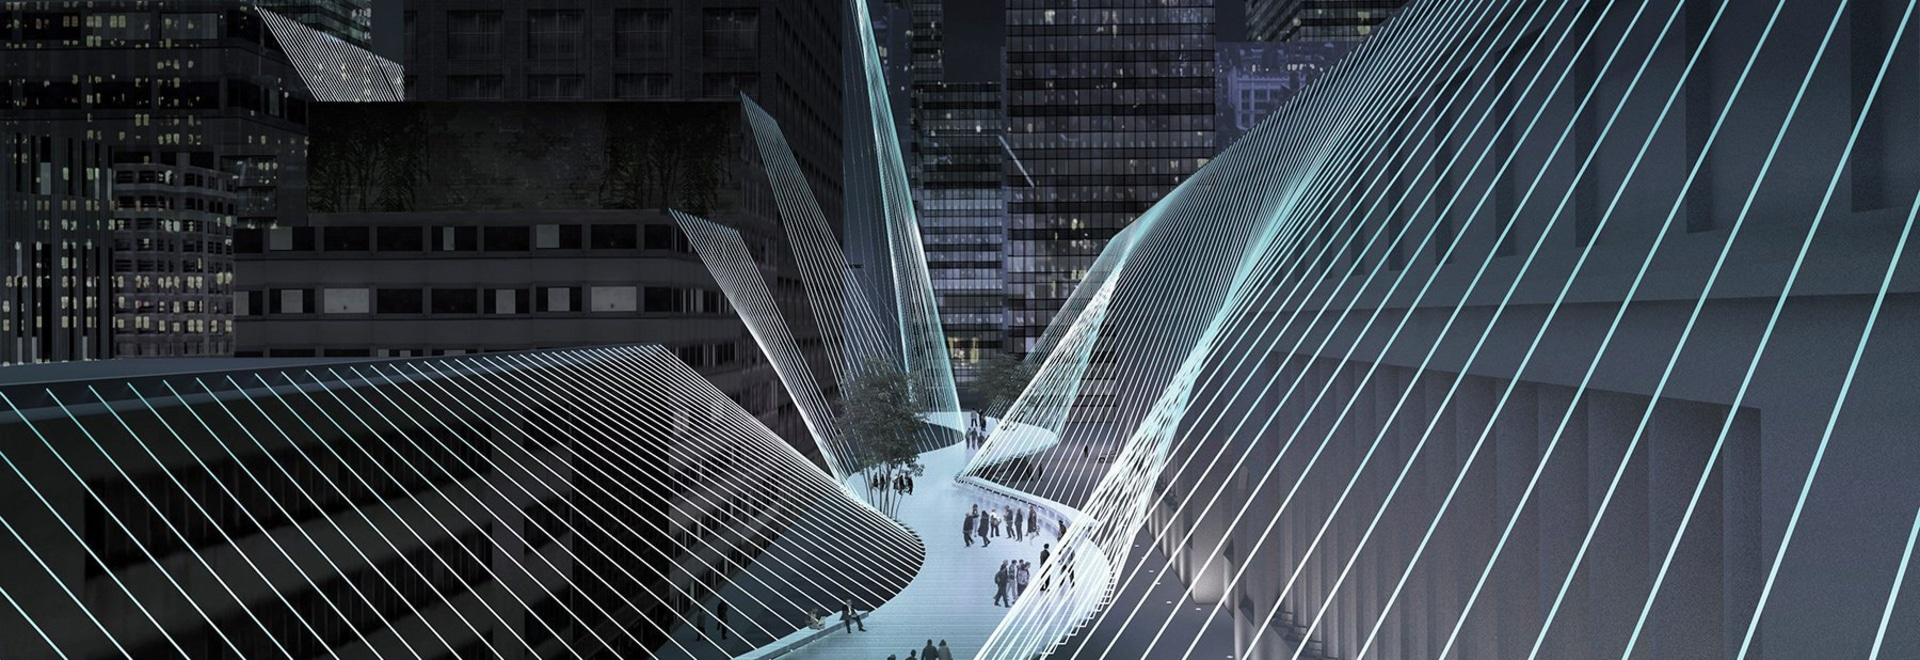 lissoni architettura proposes the 'high lines' bridge suspended from buildings in new york